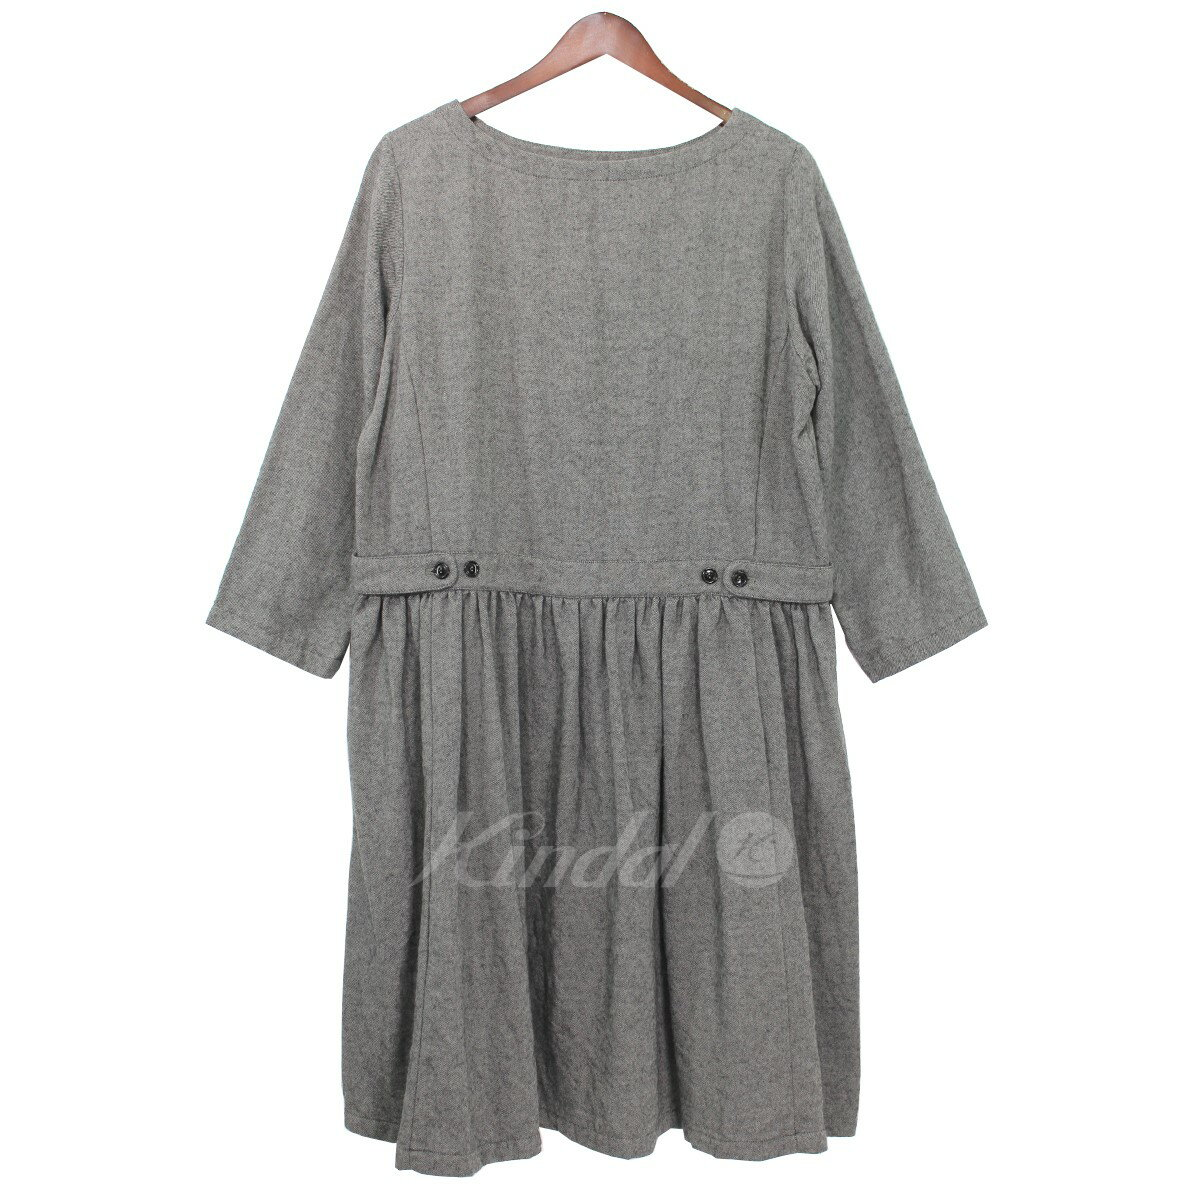 Nest Graynest Wool Cotton Robe Robe 14aw Dress 1FlJKc